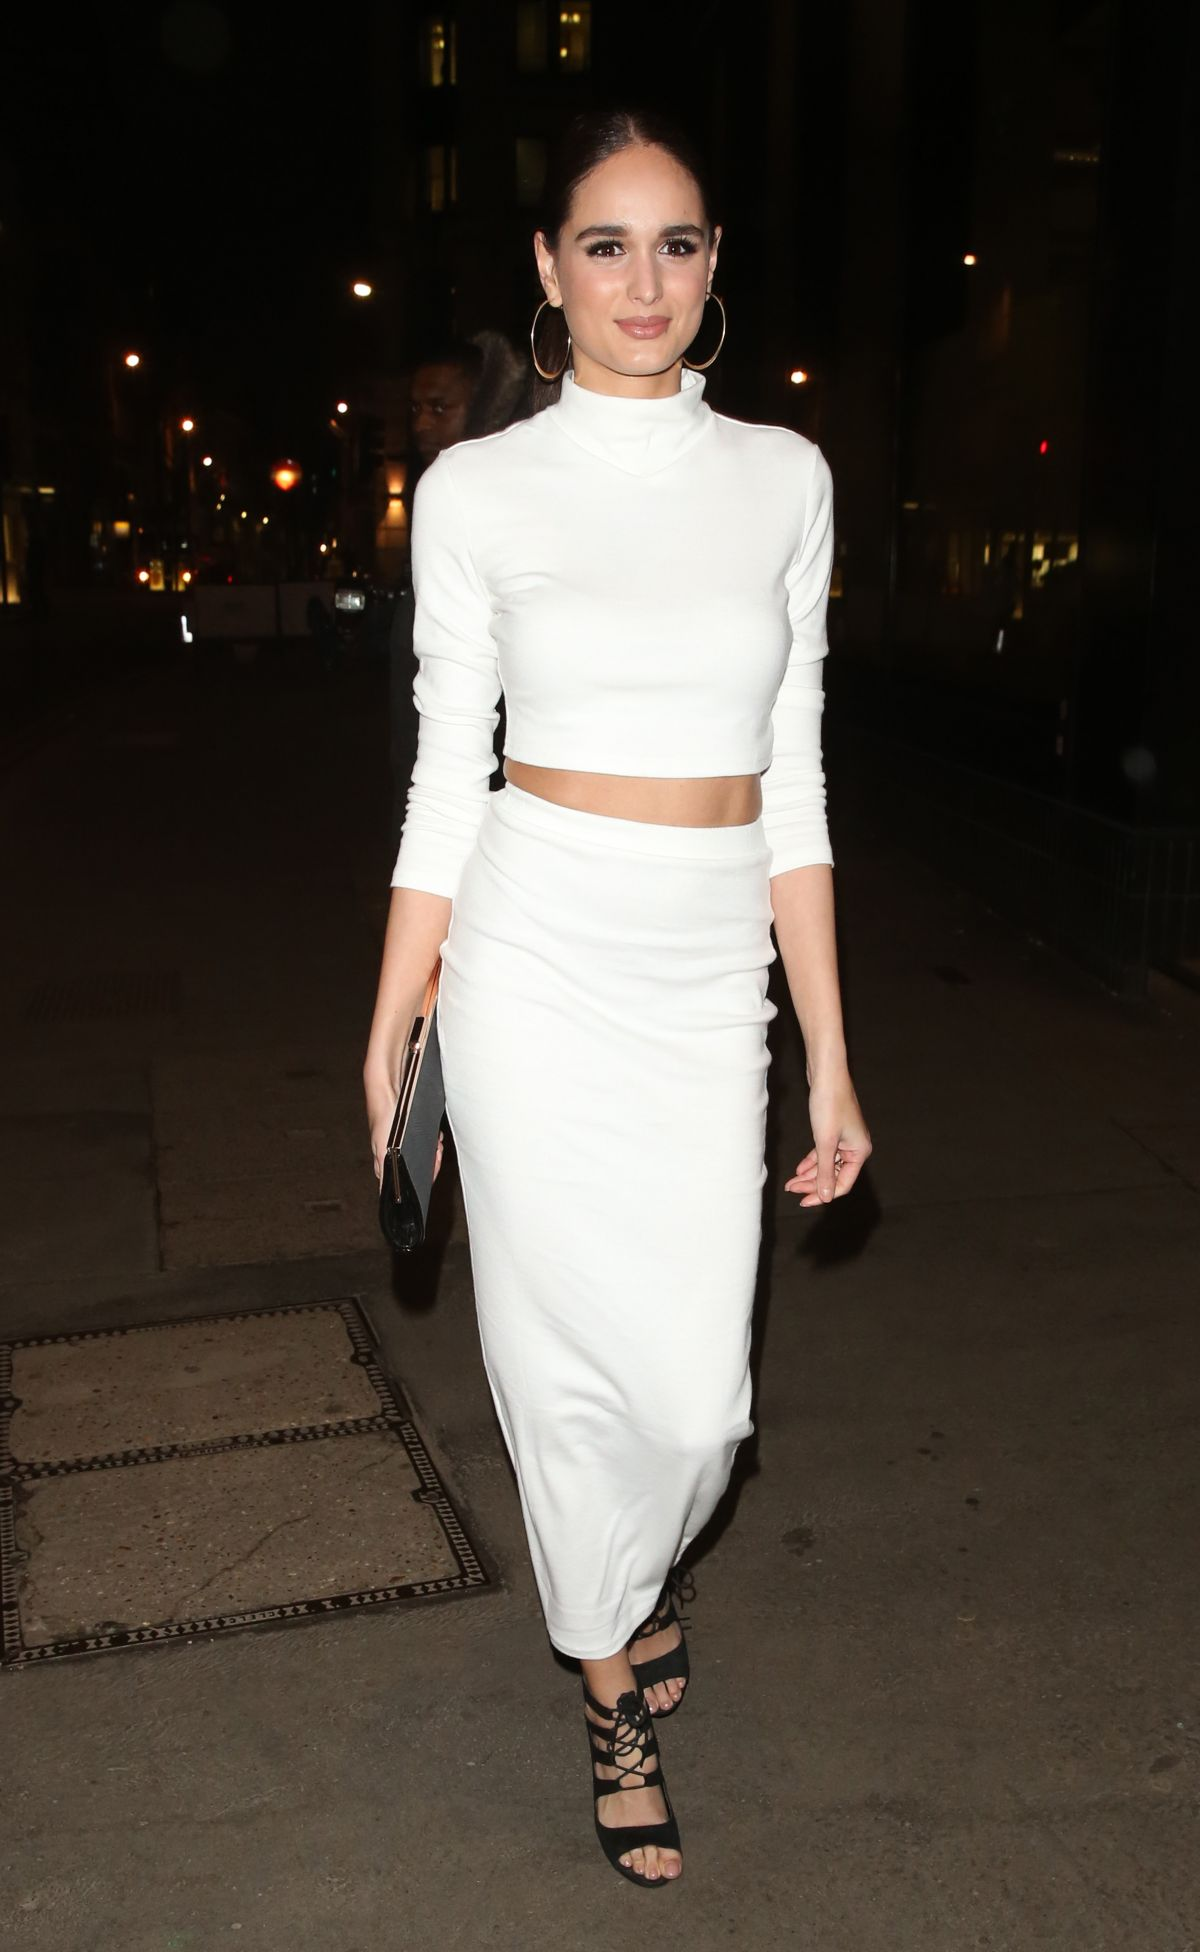 CALLY BEECH at Steam & Rye Club in London 01/28/2016